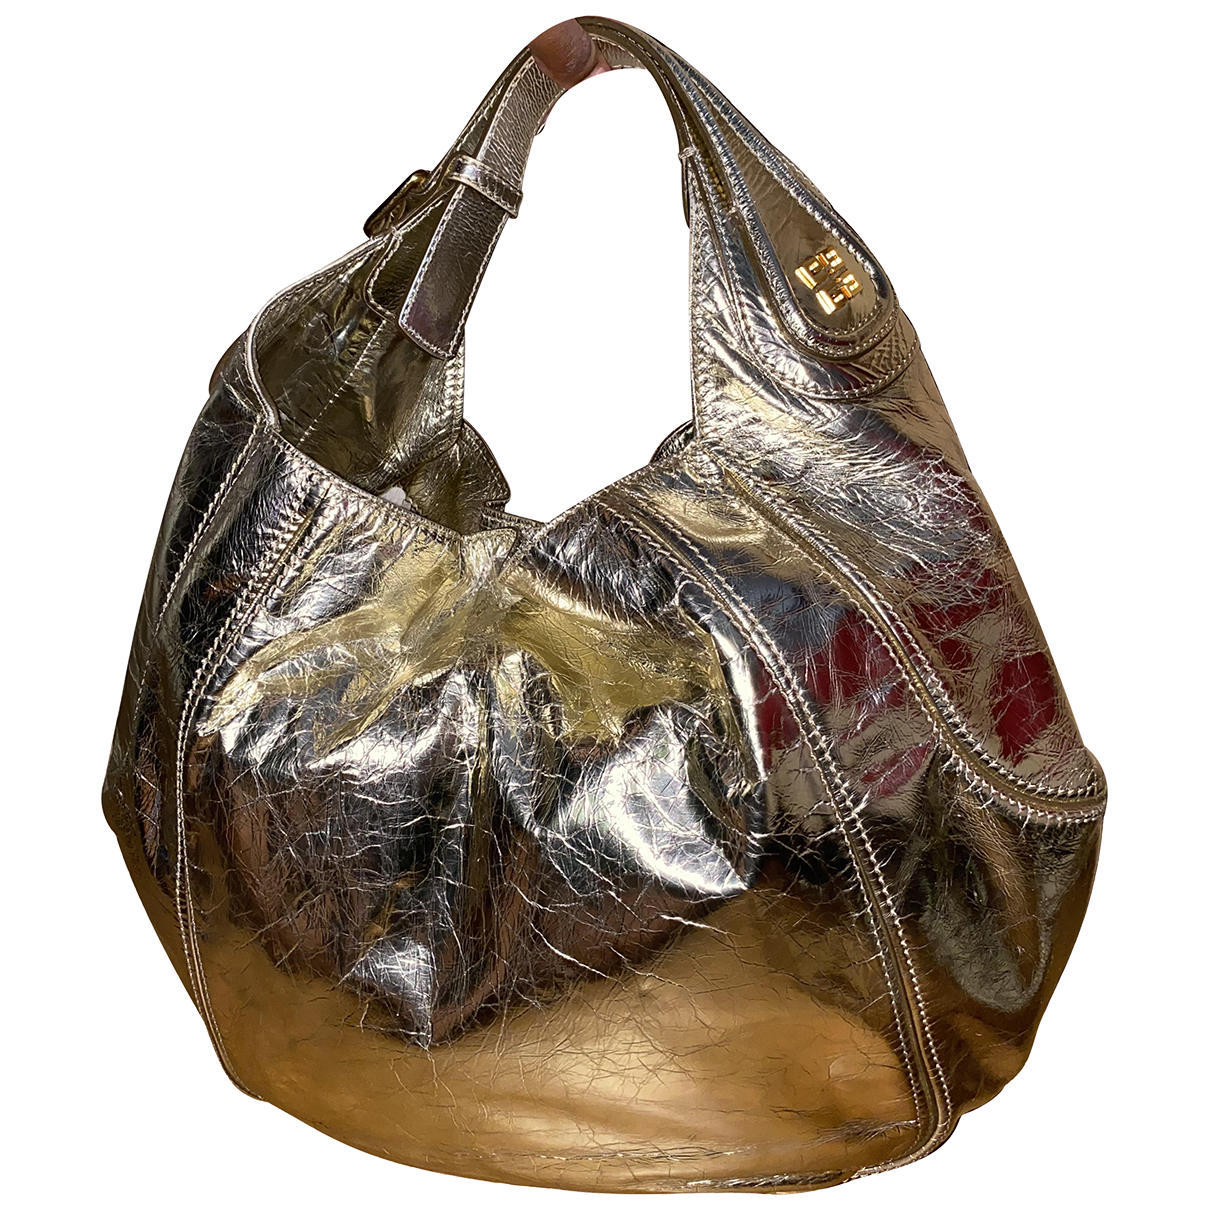 Givenchy N Gold Patent leather handbag for Women N